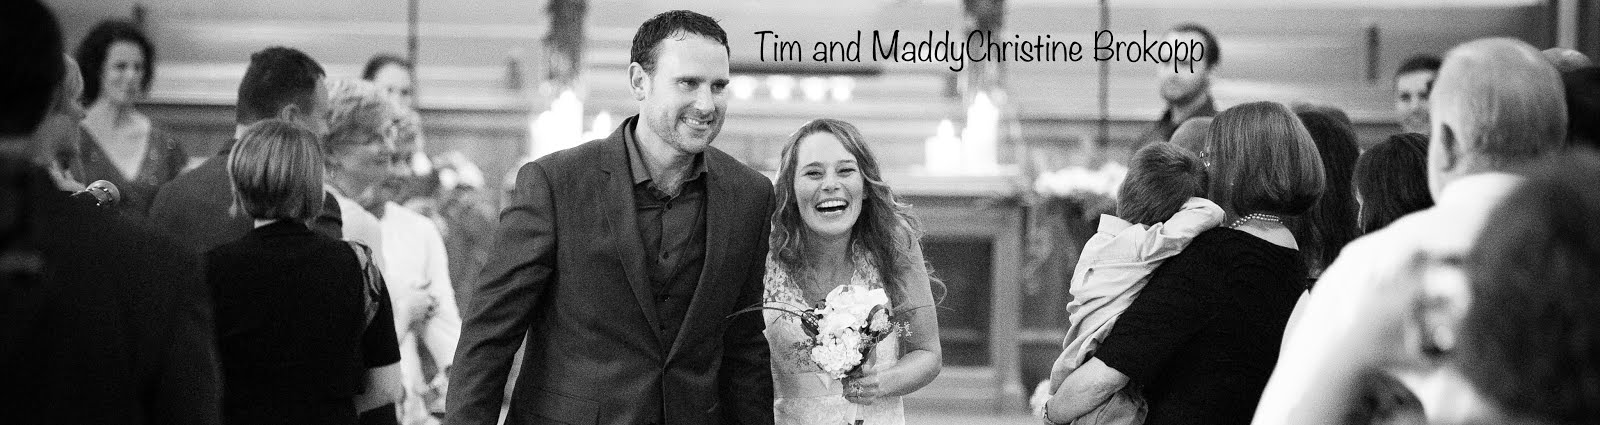 Tim and MaddyChristine Brokopp